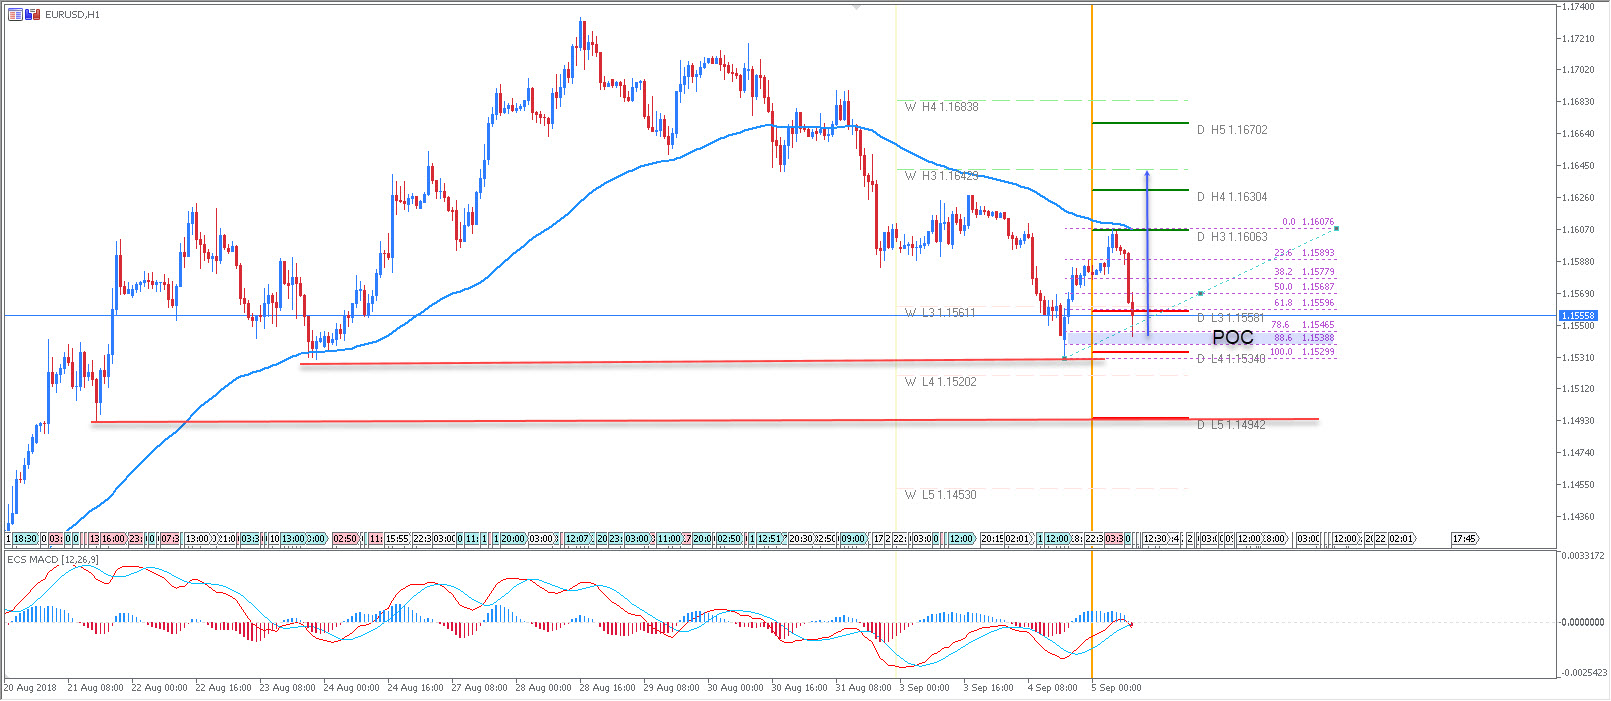 EUR/USD Might Start a Move Towards 1.1650